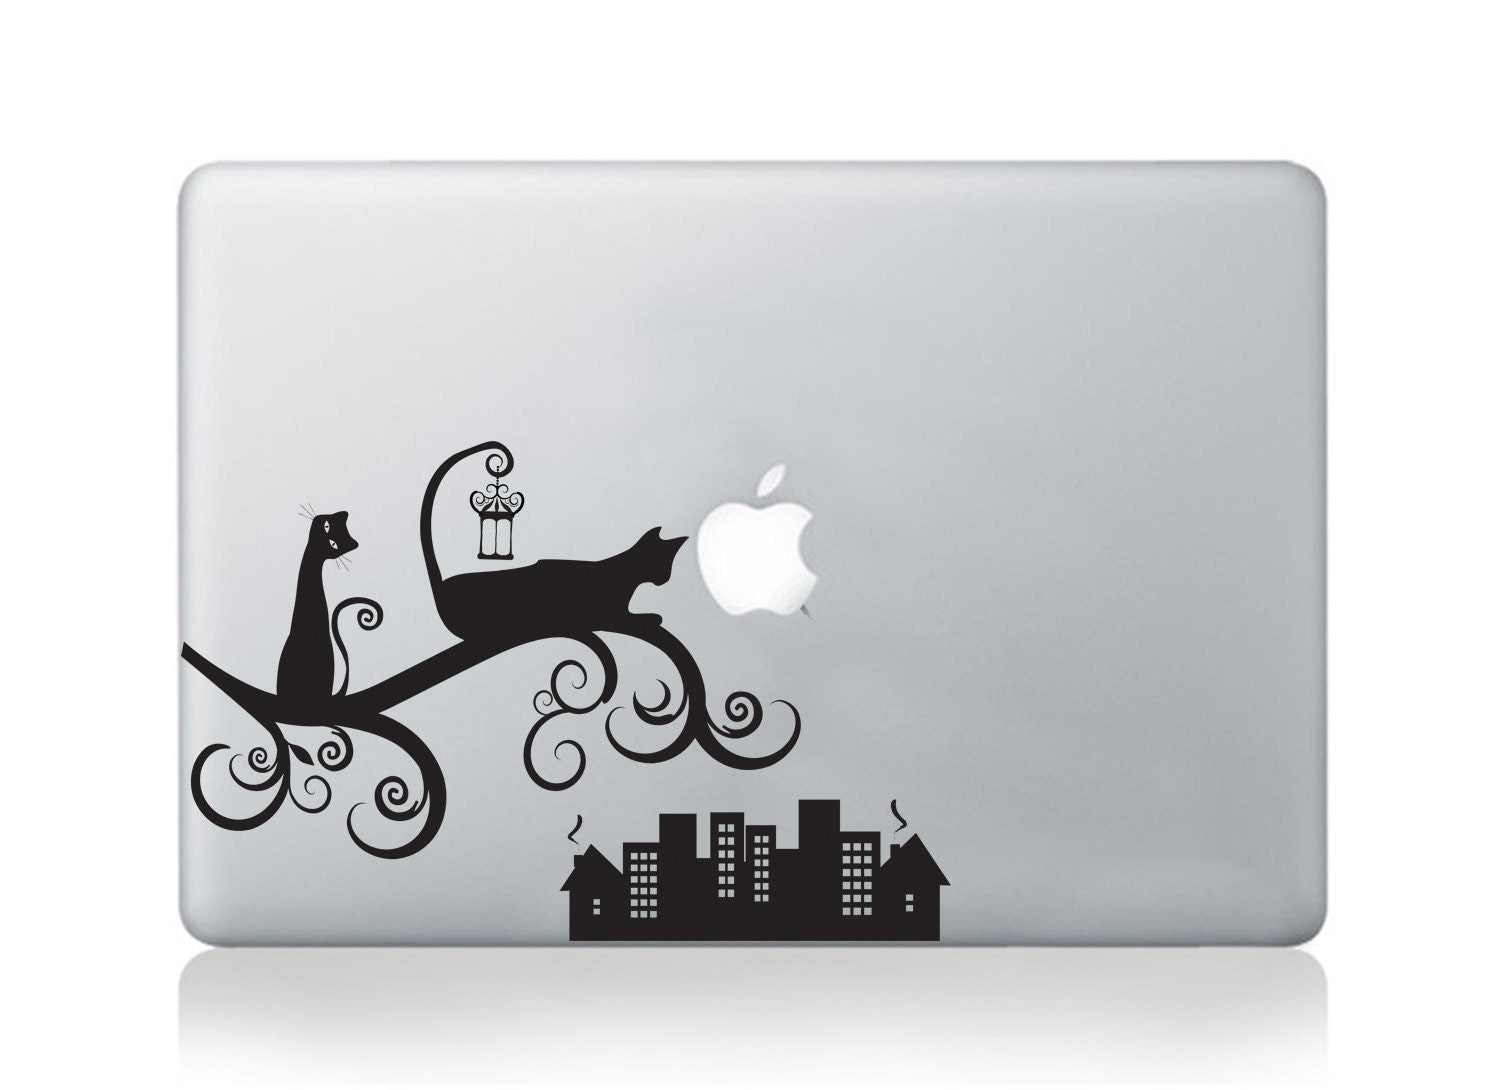 Cat Macbook Sticker Decal for Macbook Pro Air Mac Decal Vinyl Sticker for Laptops Cat Sticker Decal for Laptop